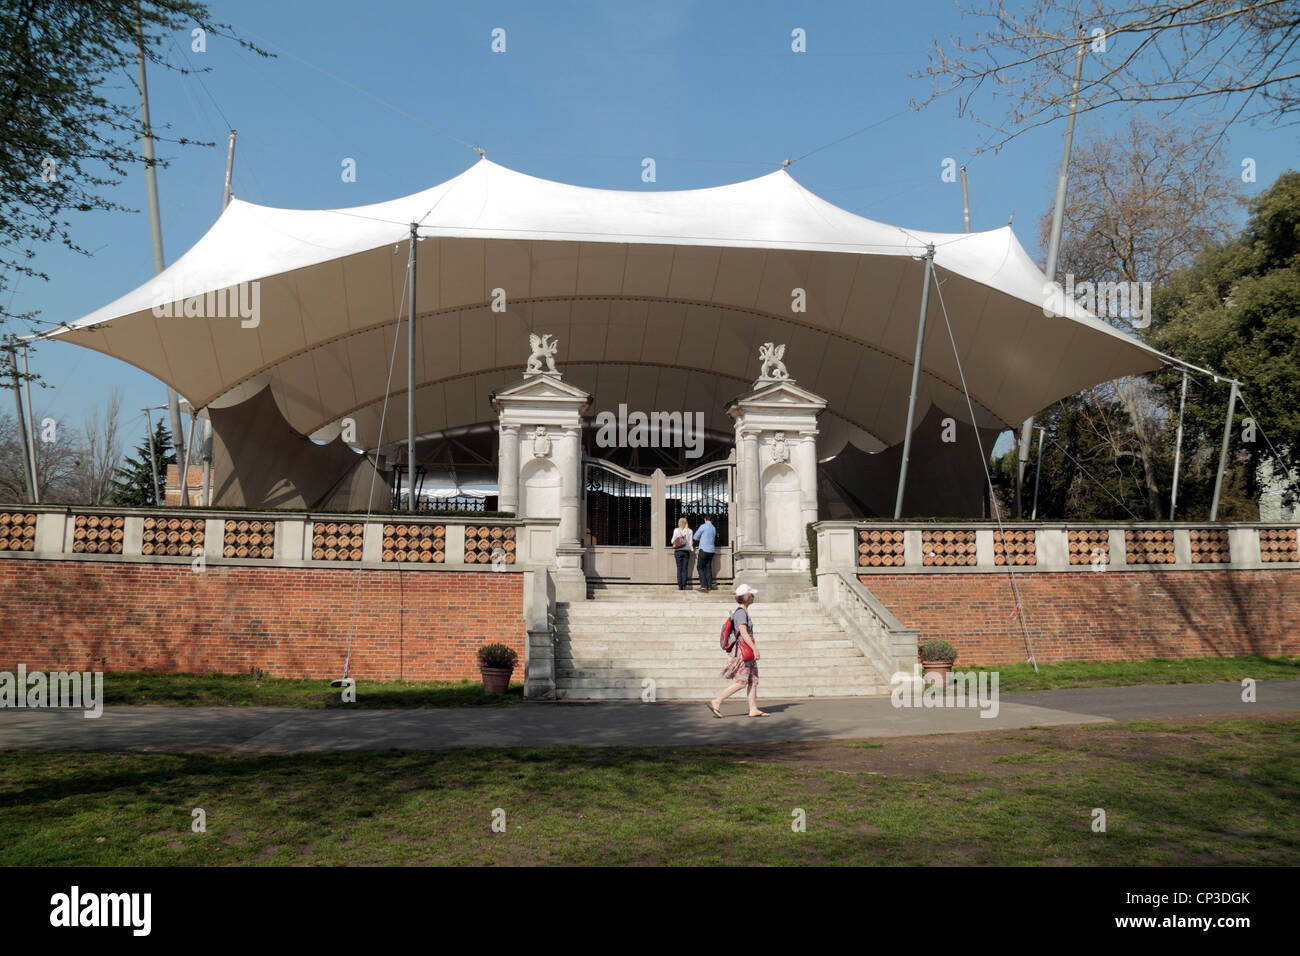 the-open-air-holland-park-theatre-home-o